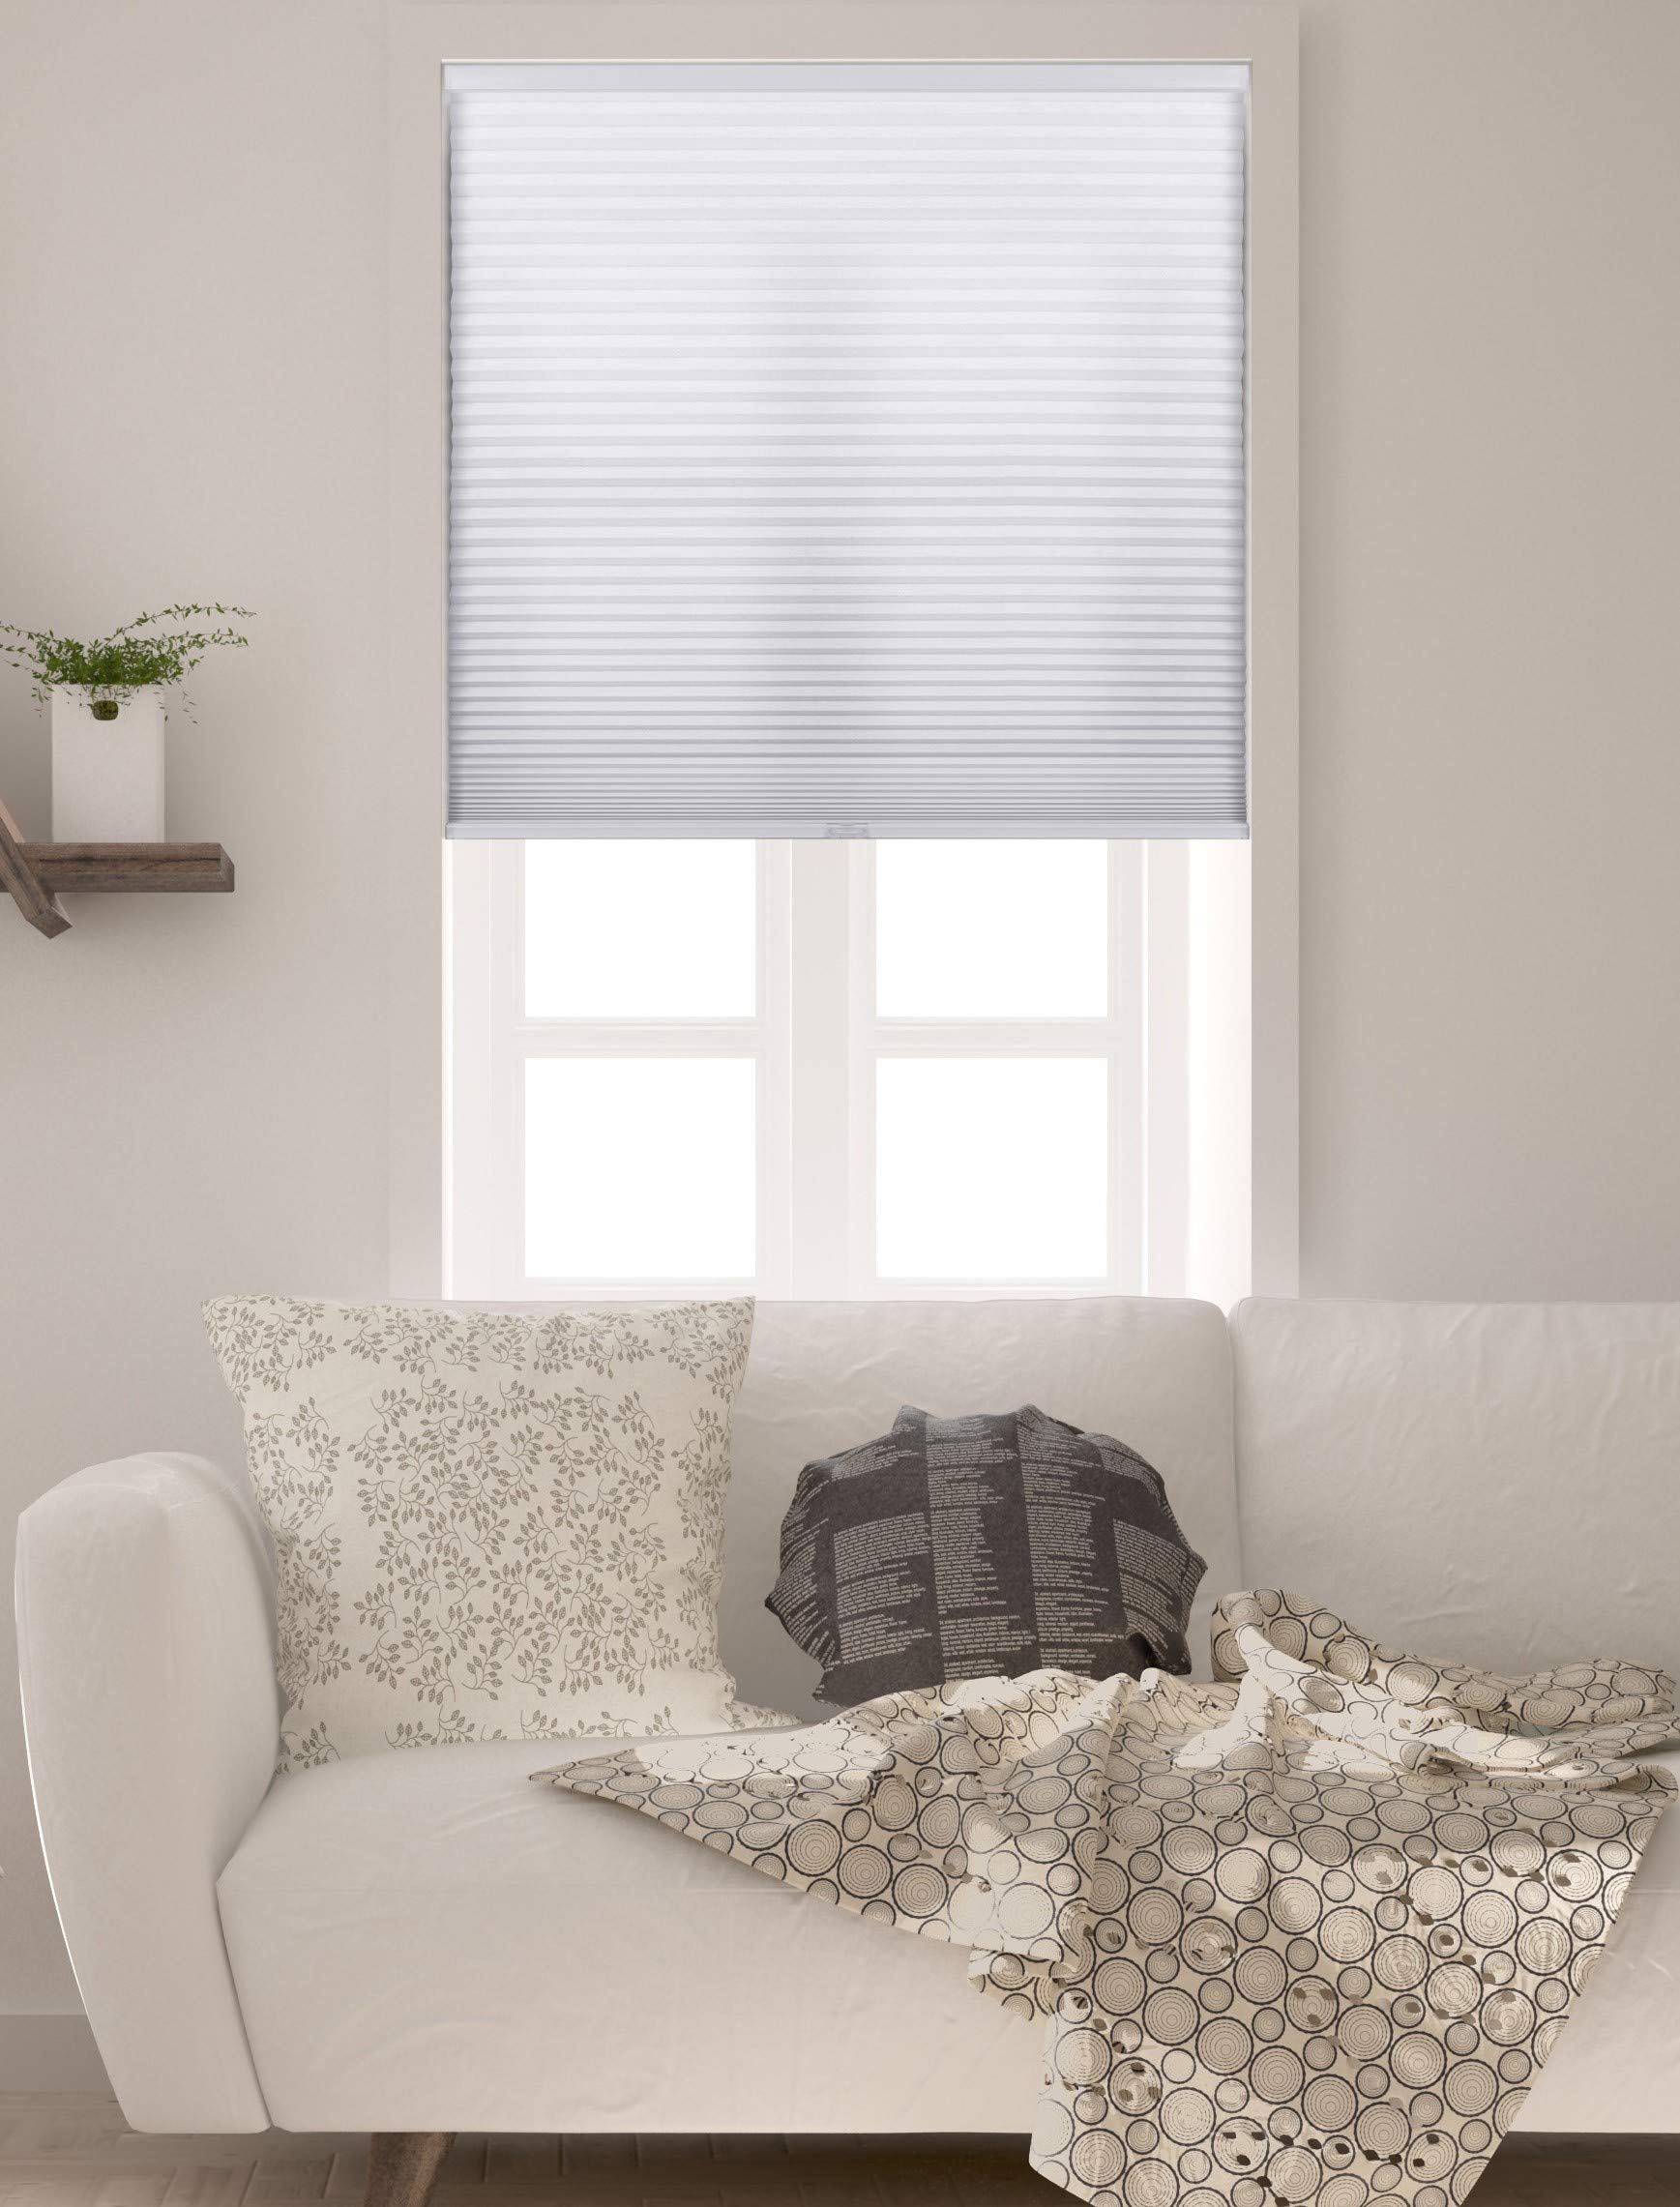 Arlo Blinds 9/16'' Single Cell Light Filtering Cordless Cellular Shades, Color: Pure White, Size: 25.5'' W x 72'' H by Arlo Blinds